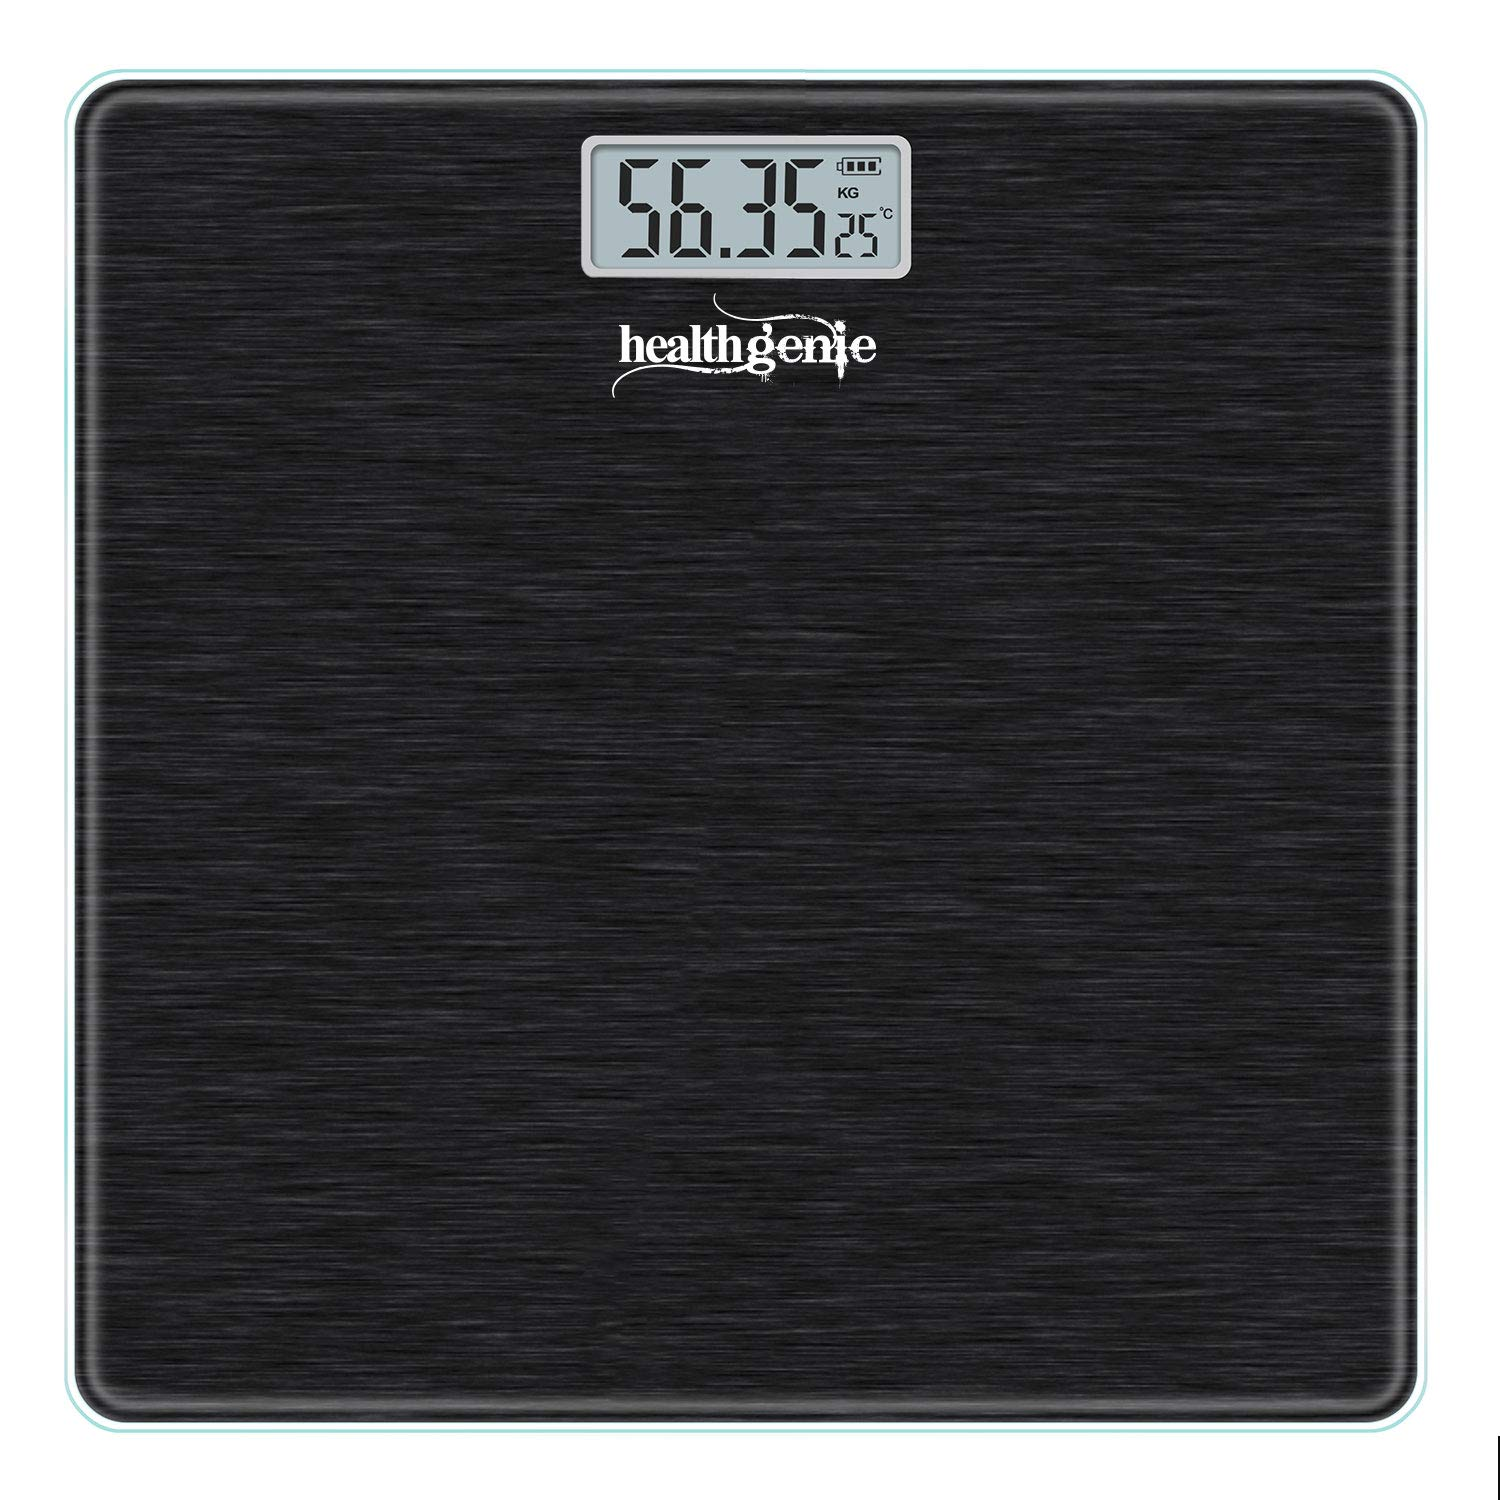 Healthgenie Electronic Digital Weighing Scale